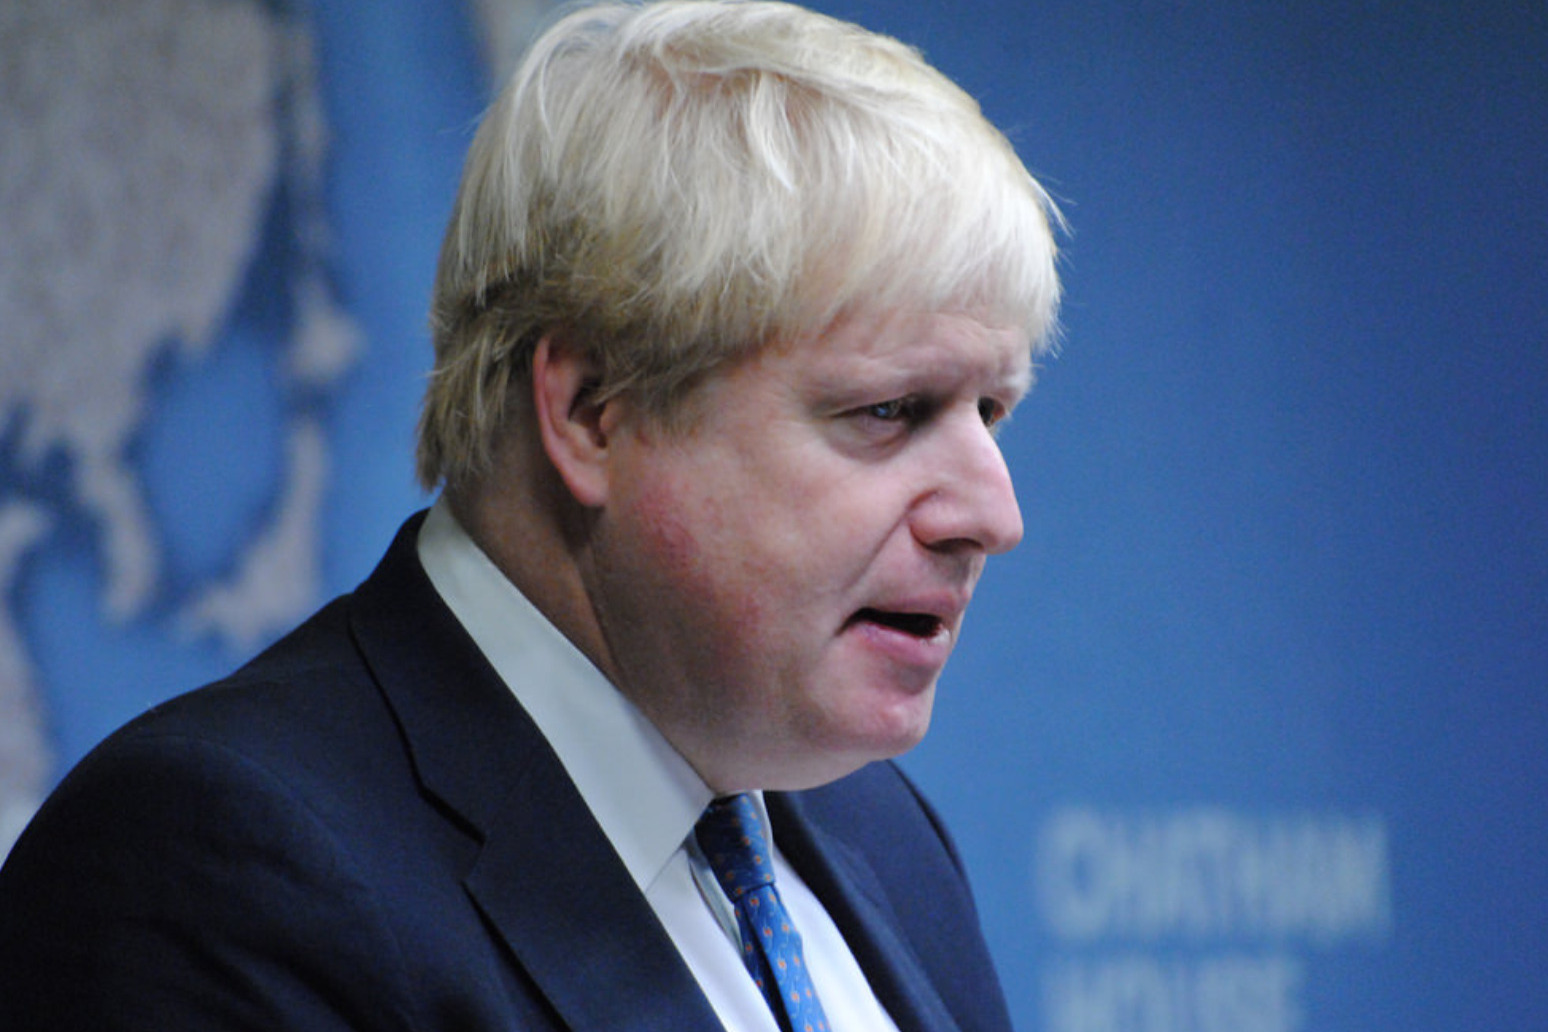 Britain had to move quickly on Syria, ruling out parliamentary approval